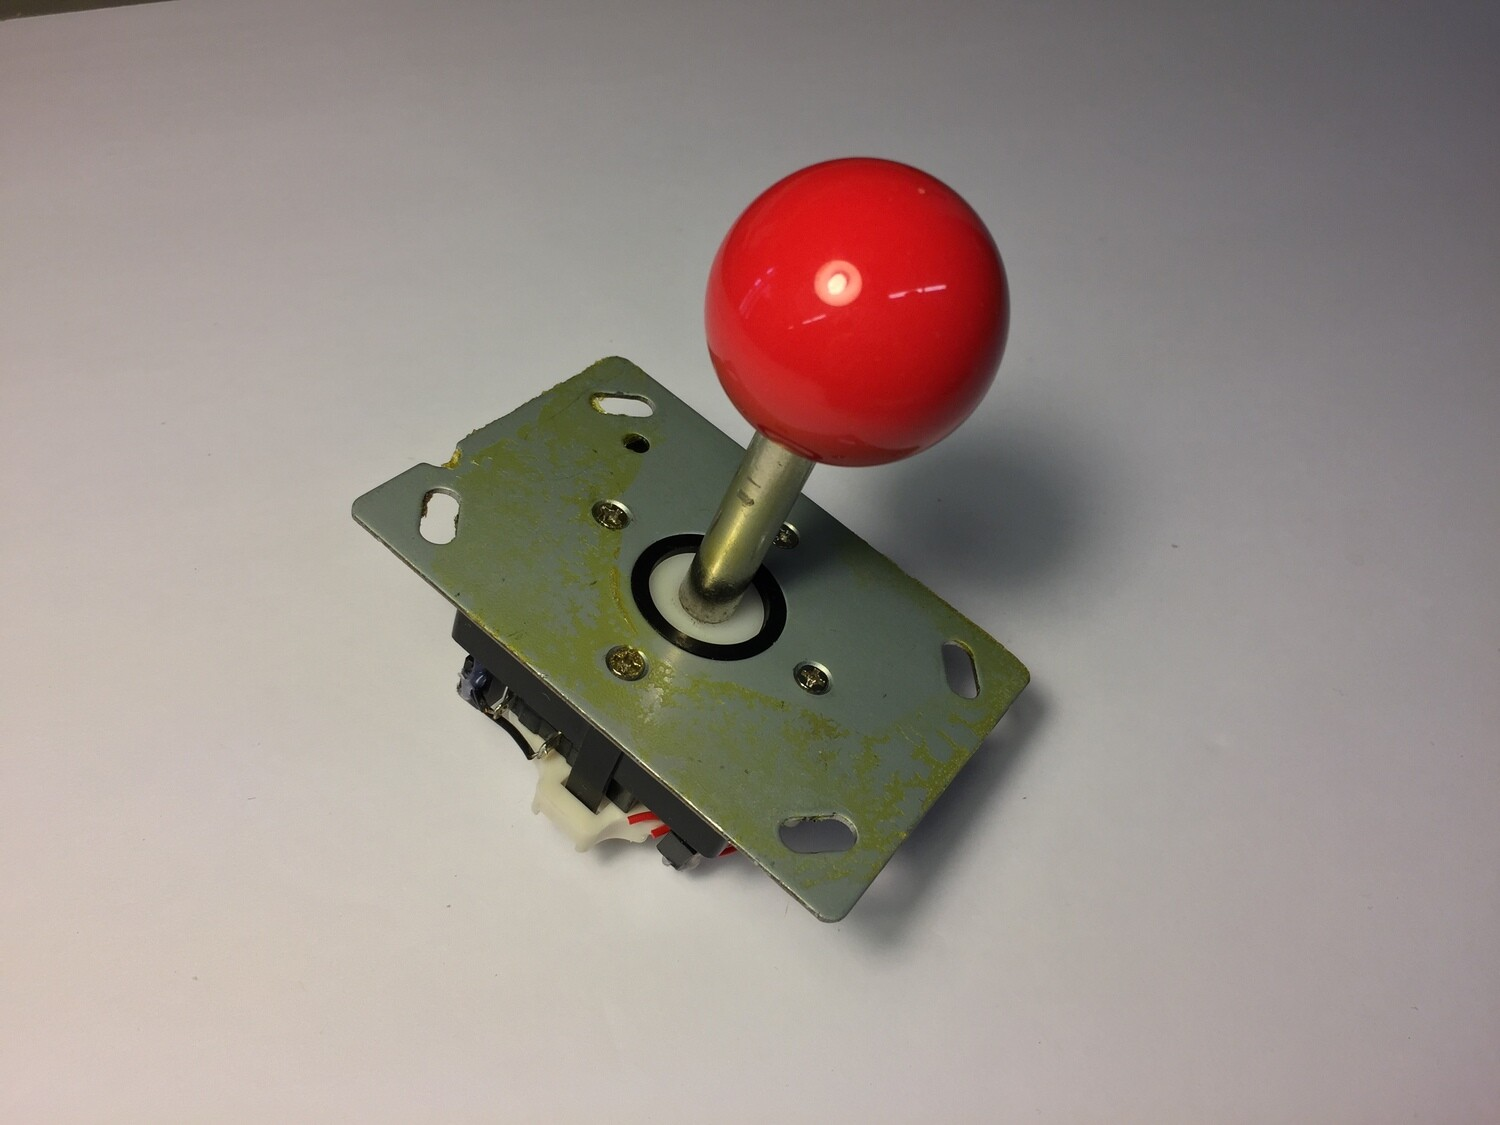 Standard A1UP Pac-Man Joystick with Red Ball top - GOOD CONDITION